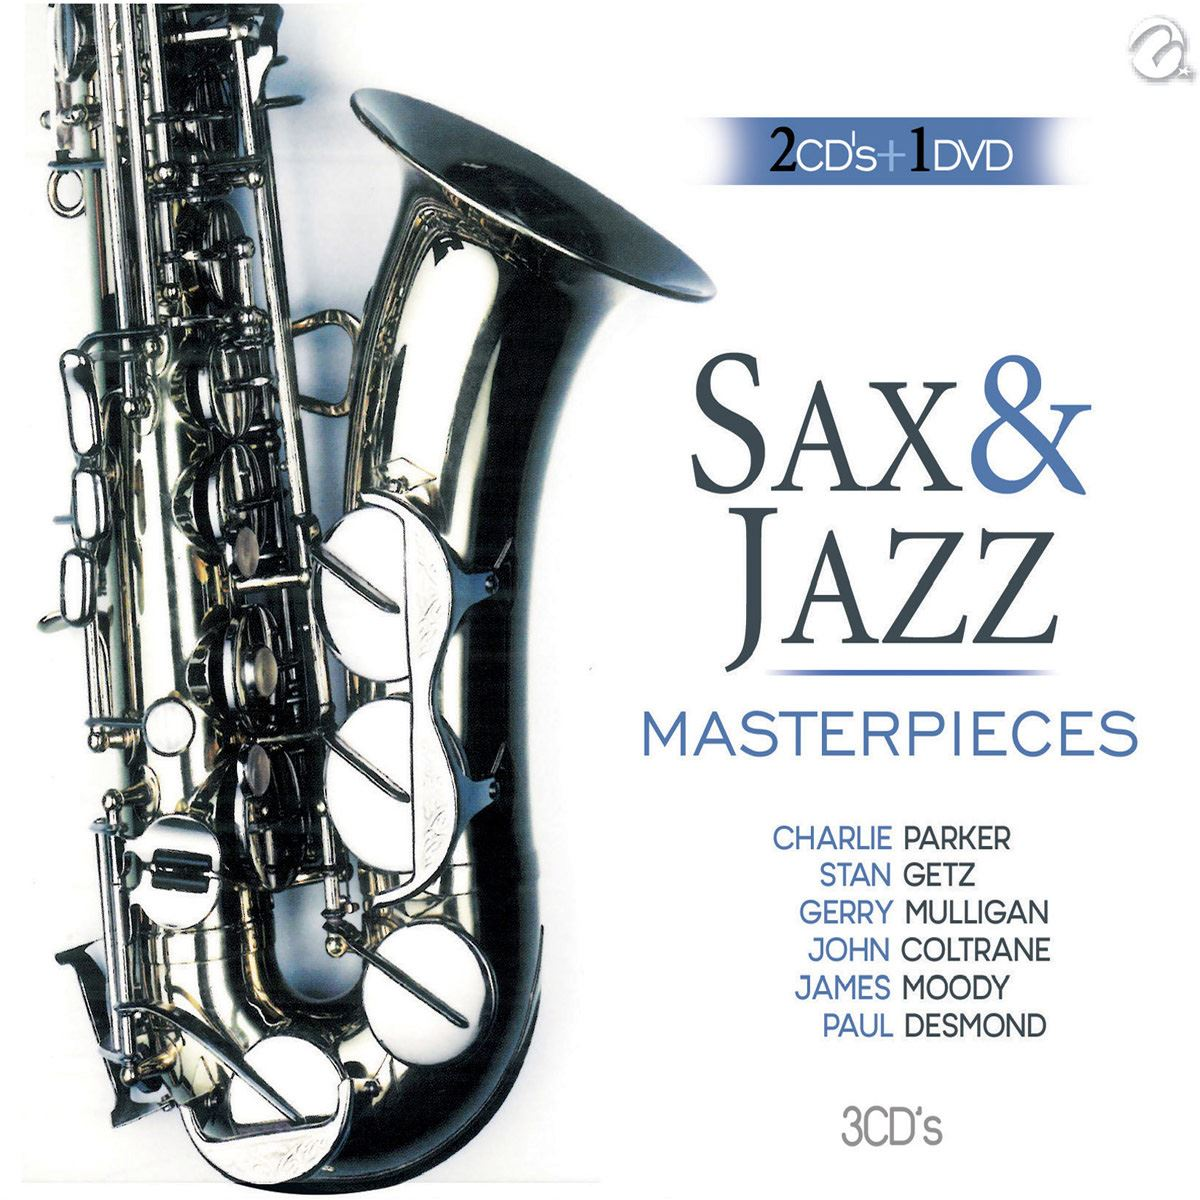 3cd sax & jazz masterpieces  - Sanborns